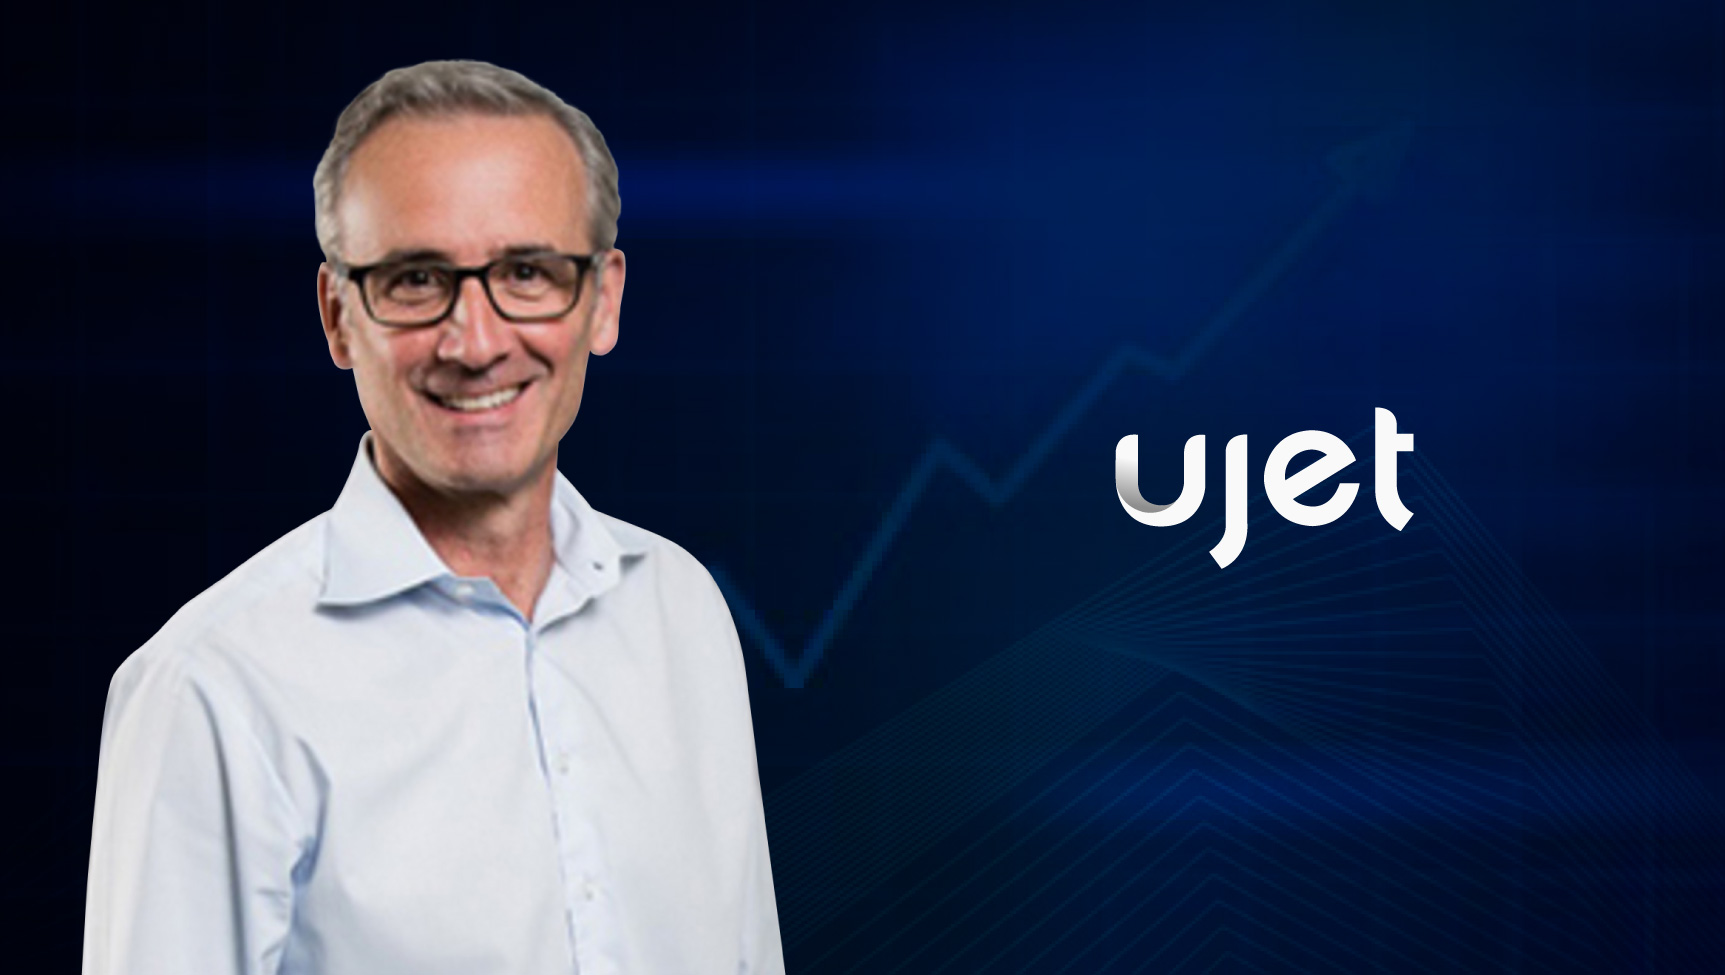 SalesTech Star Interview With Jim Schinella, Chief Business Officer at UJET